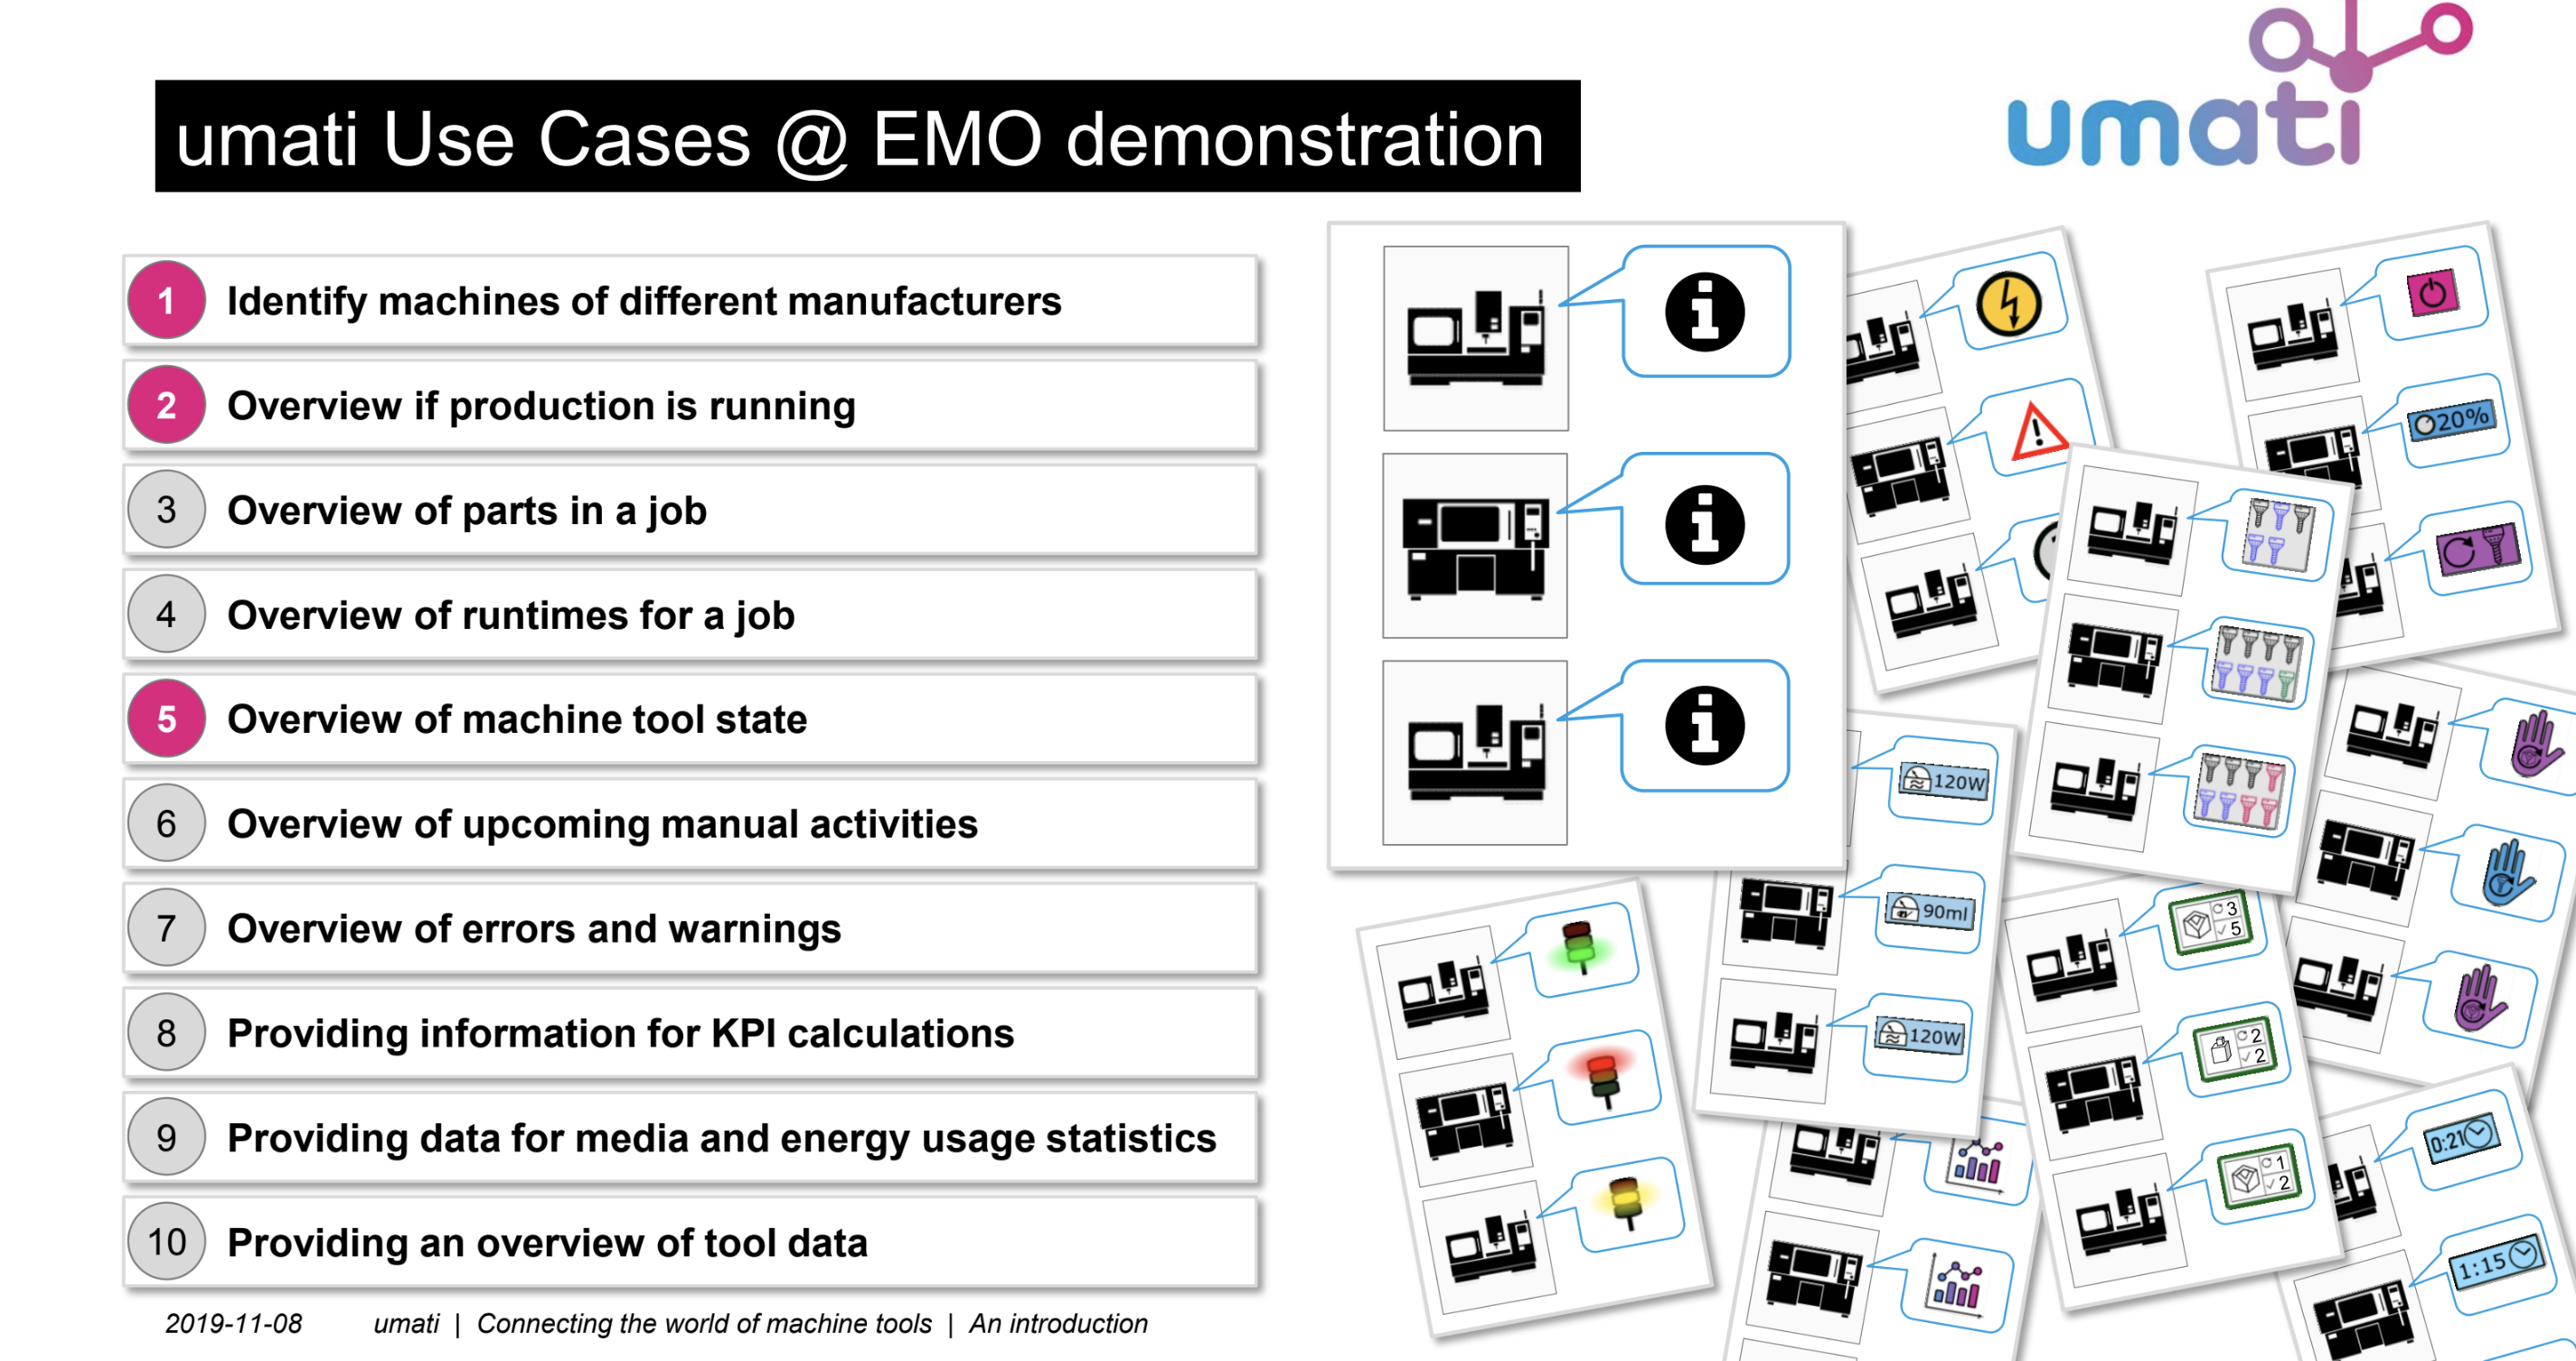 Umati Use Cases released at EMO 2019